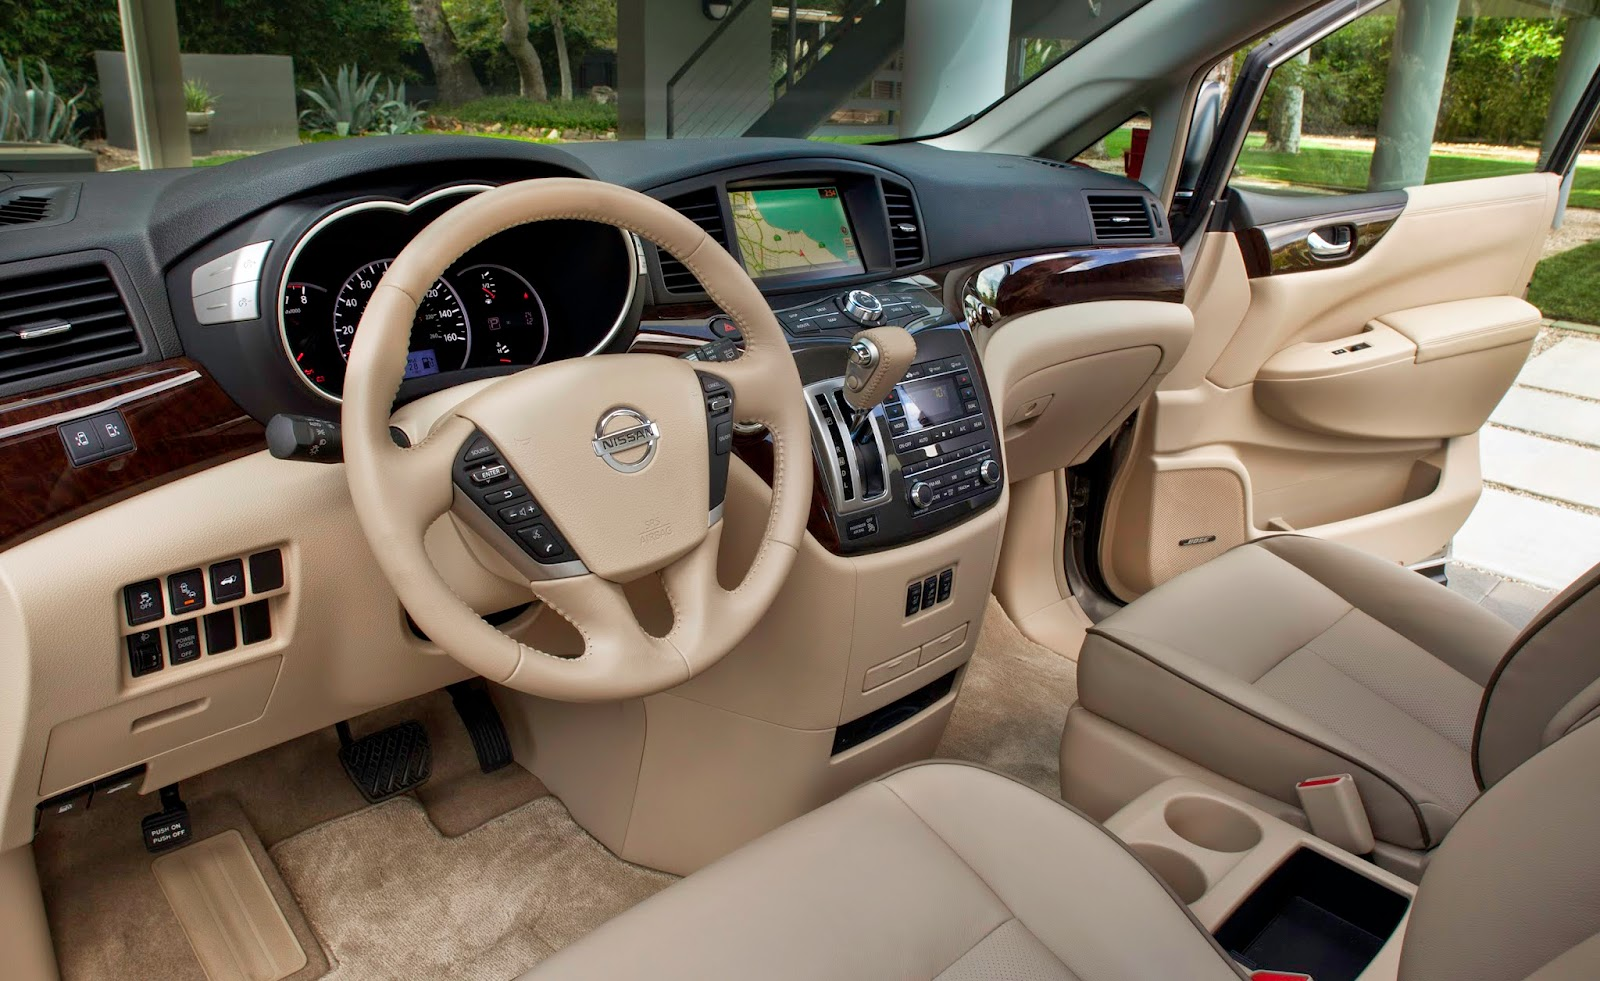 Interior view of 2014 Nissan Quest